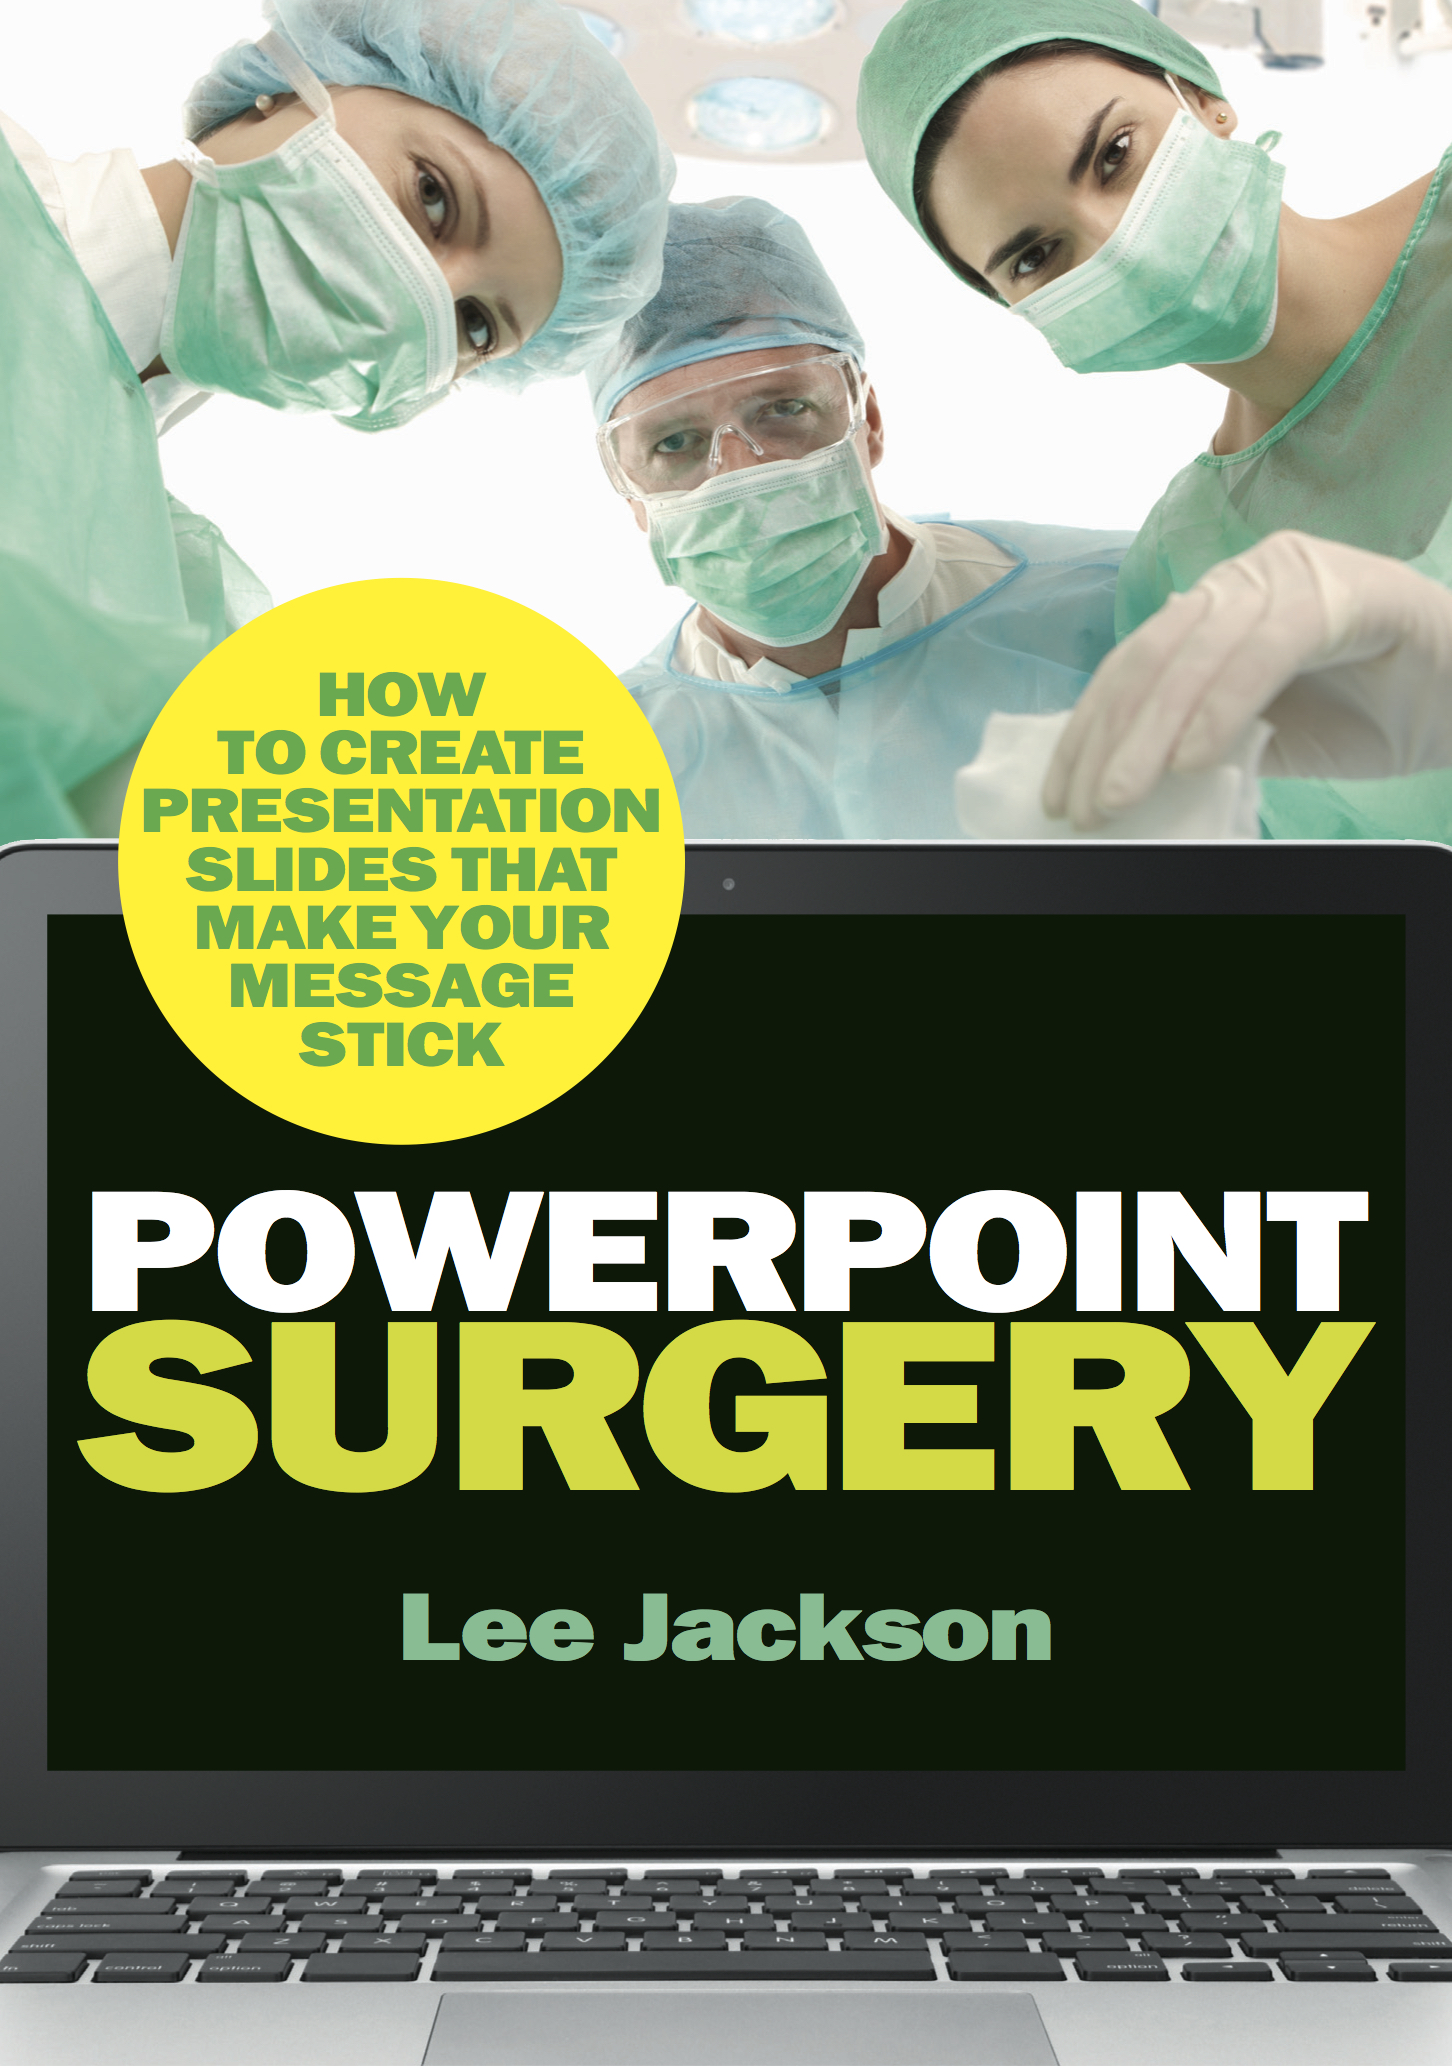 powerpoint surgery how to create presentation slides that make your